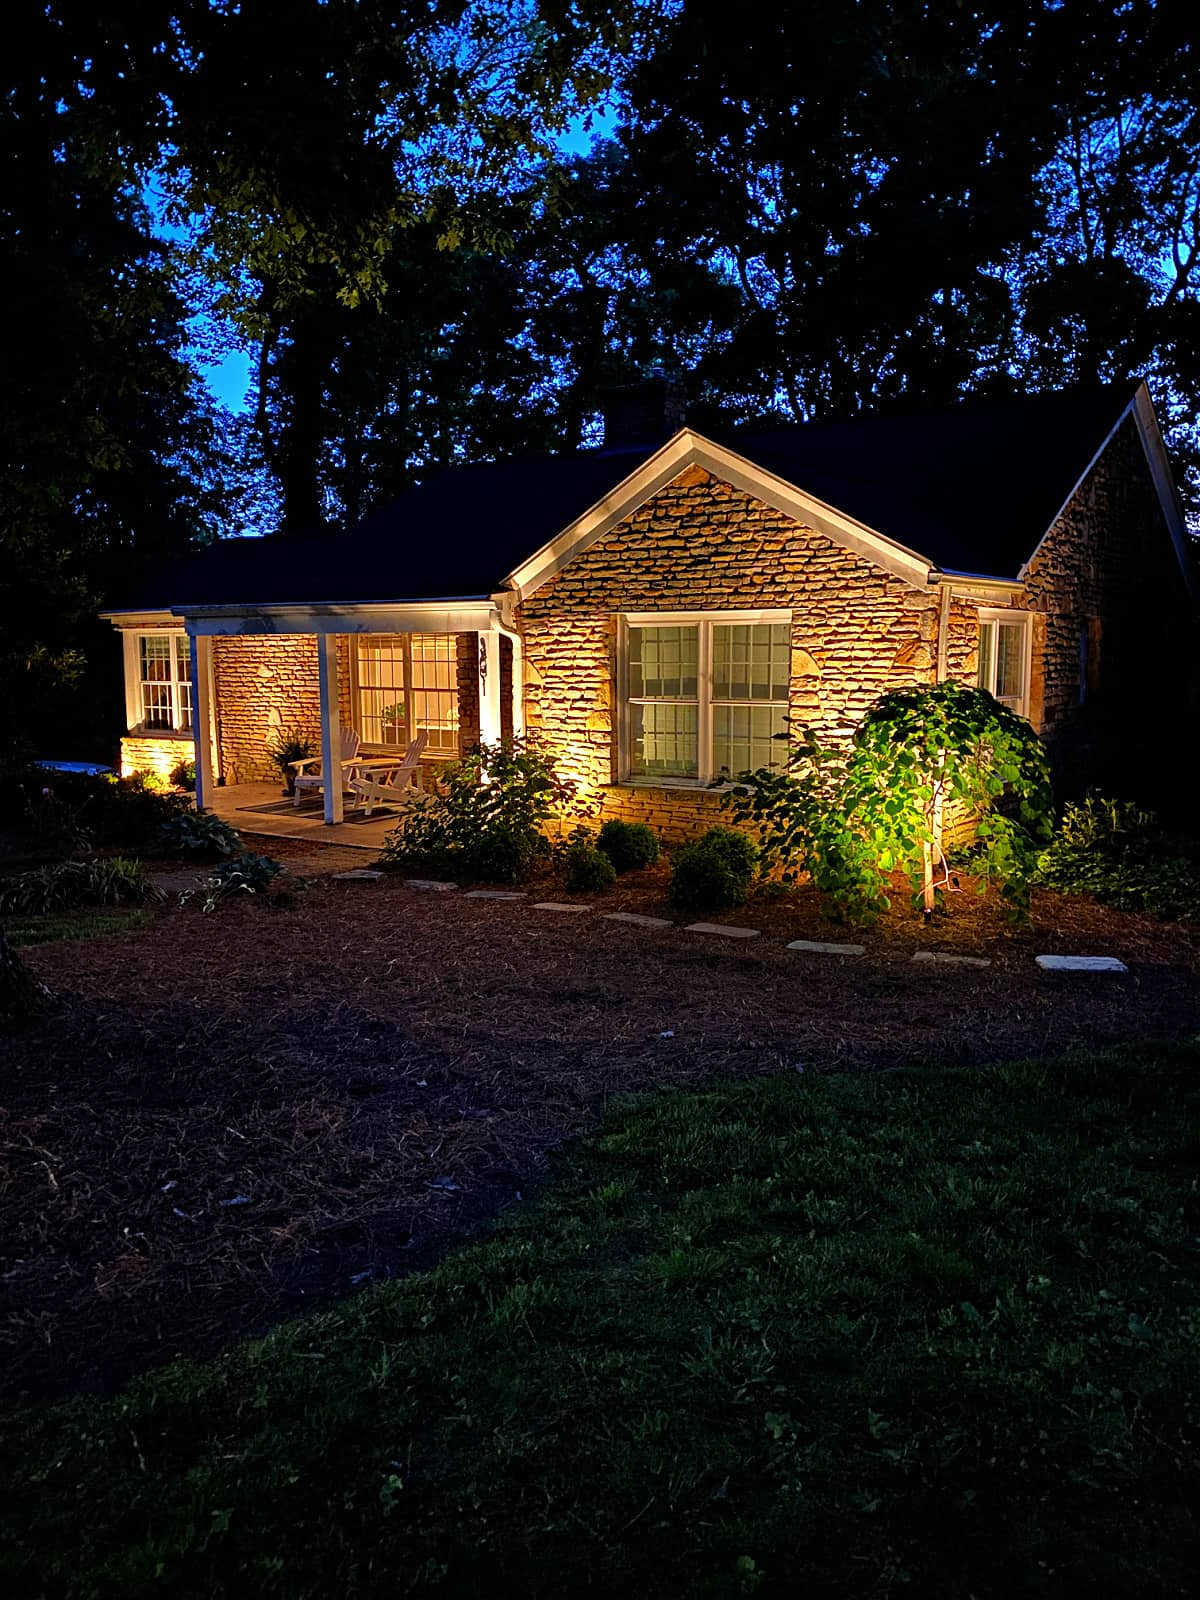 stone cottage at night with outdoor lights